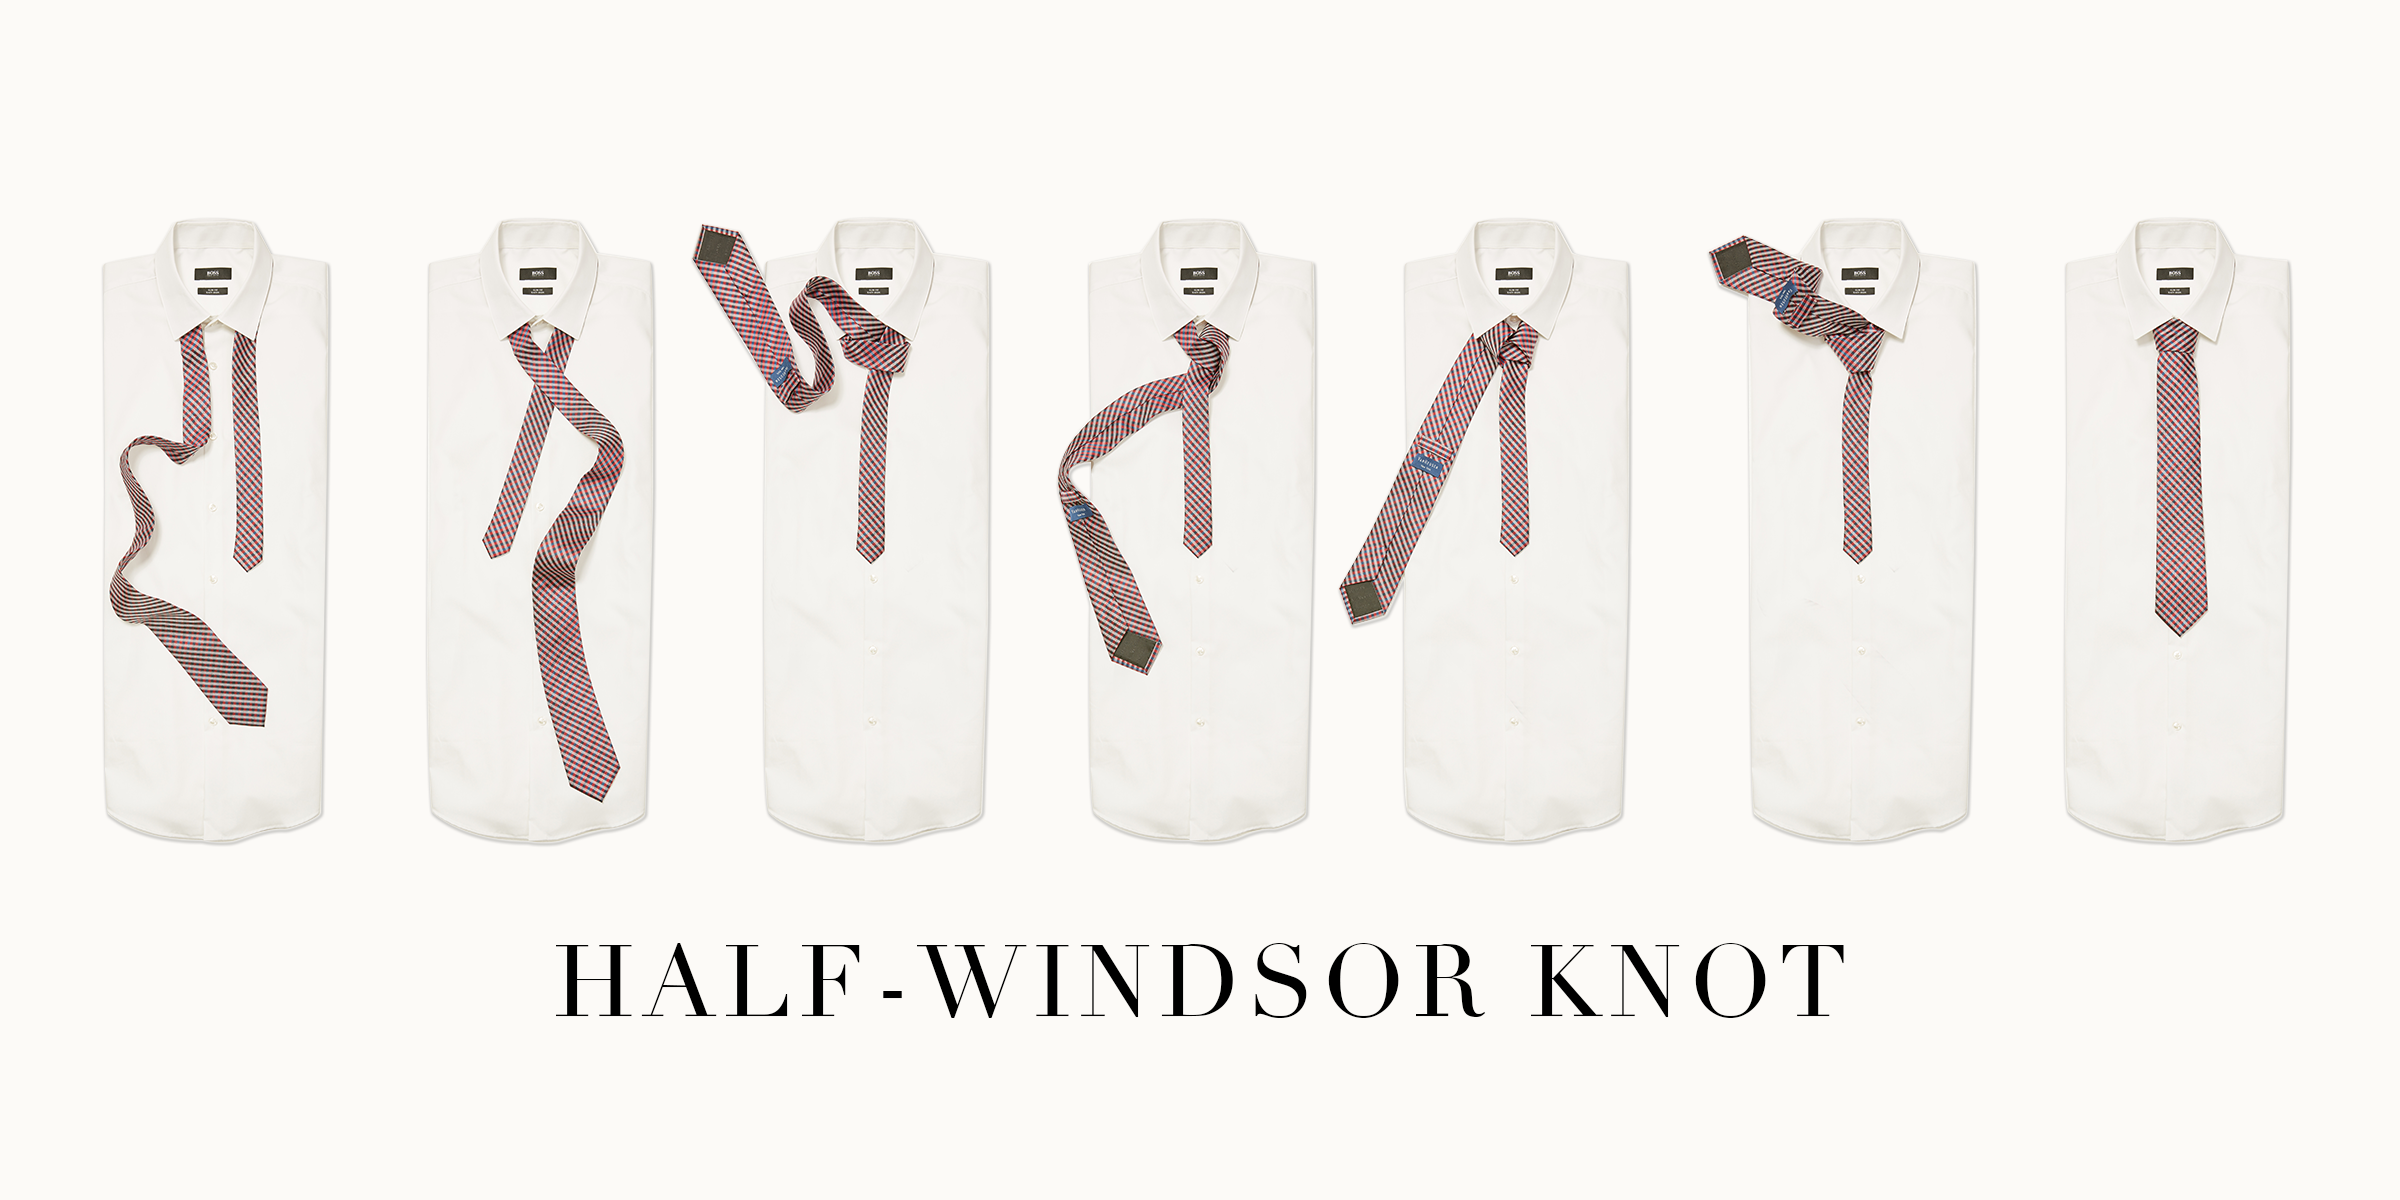 Ties Your Step By Guide The Iconic Edition How To Tie Halfwindsor Knot Half Windsor